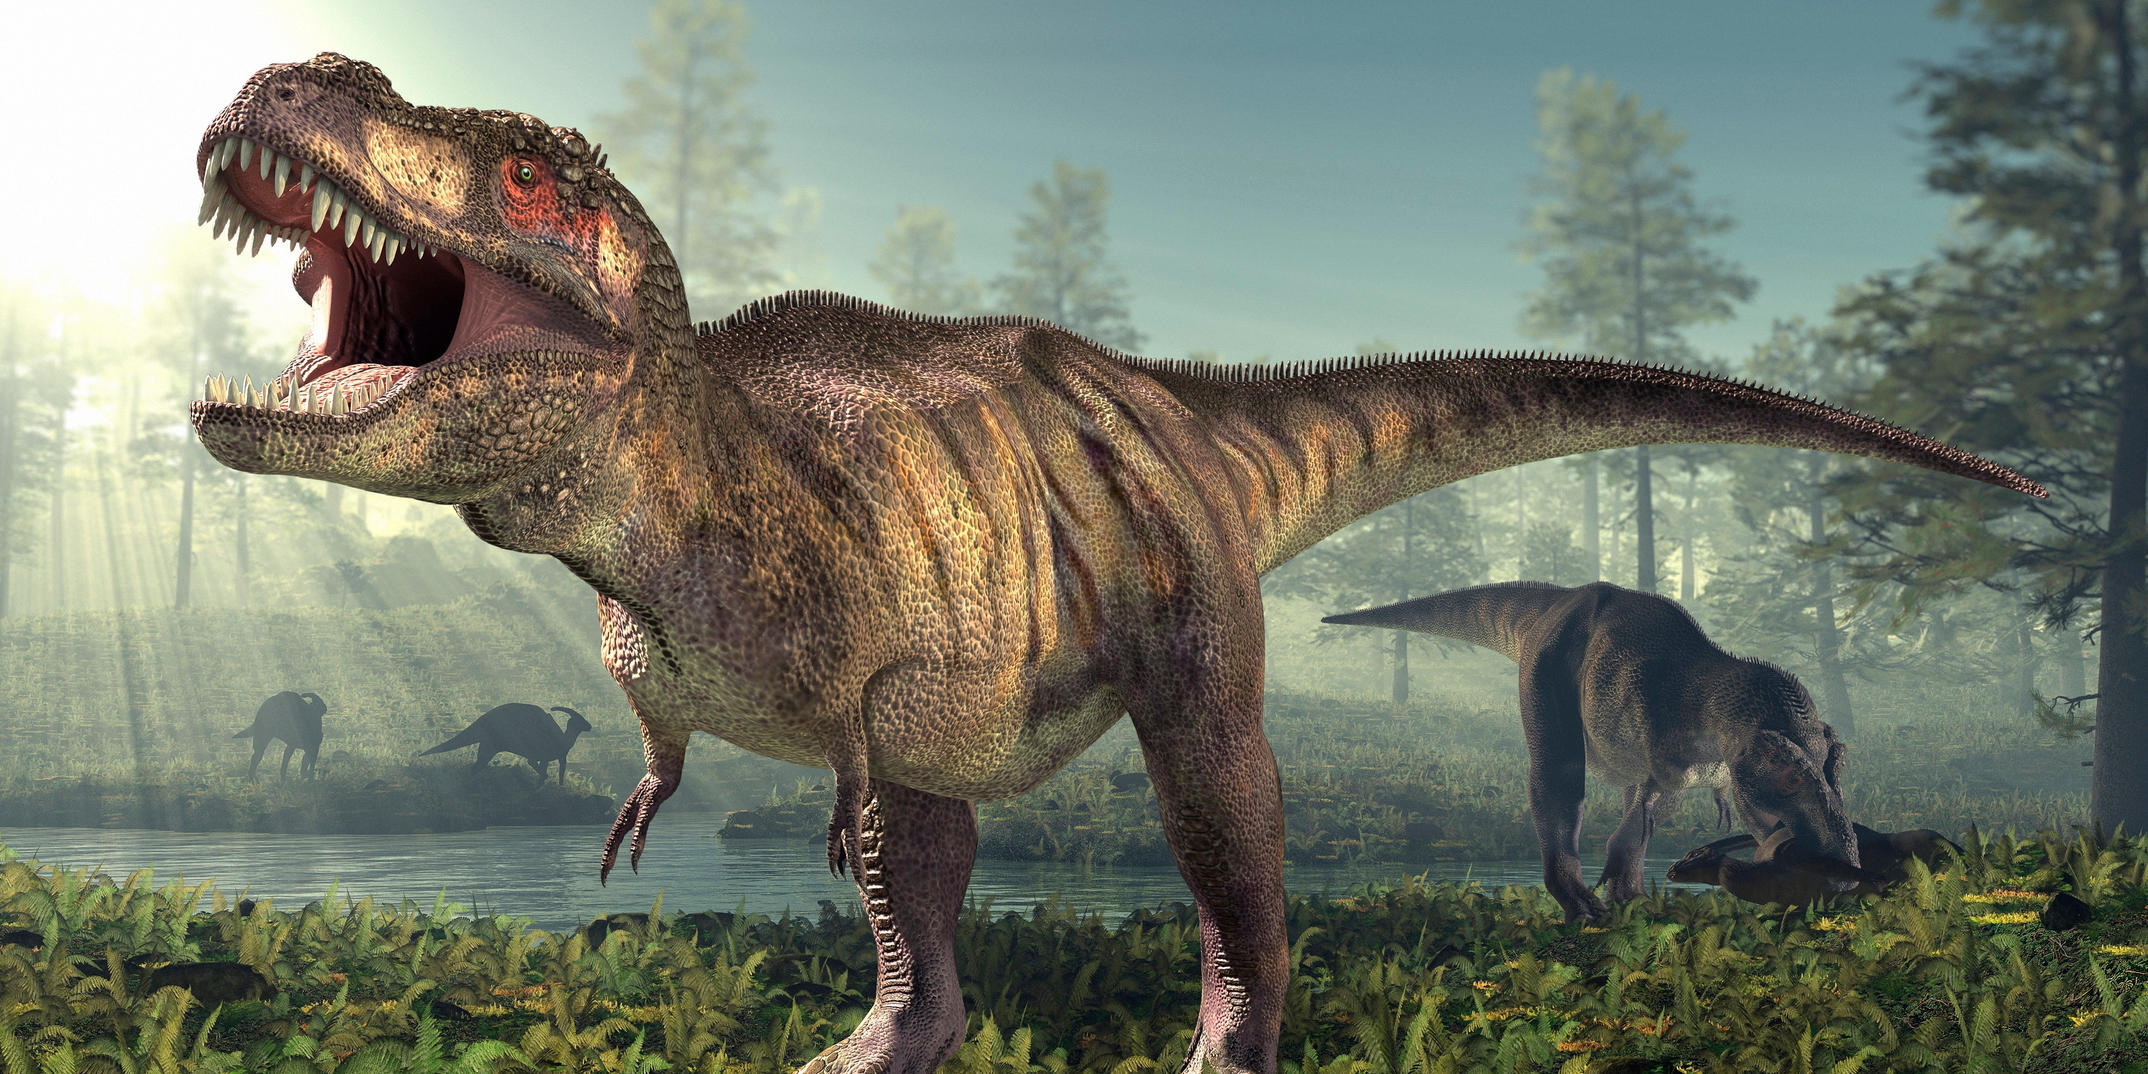 T. rex was actually bigger than we thought - CNET